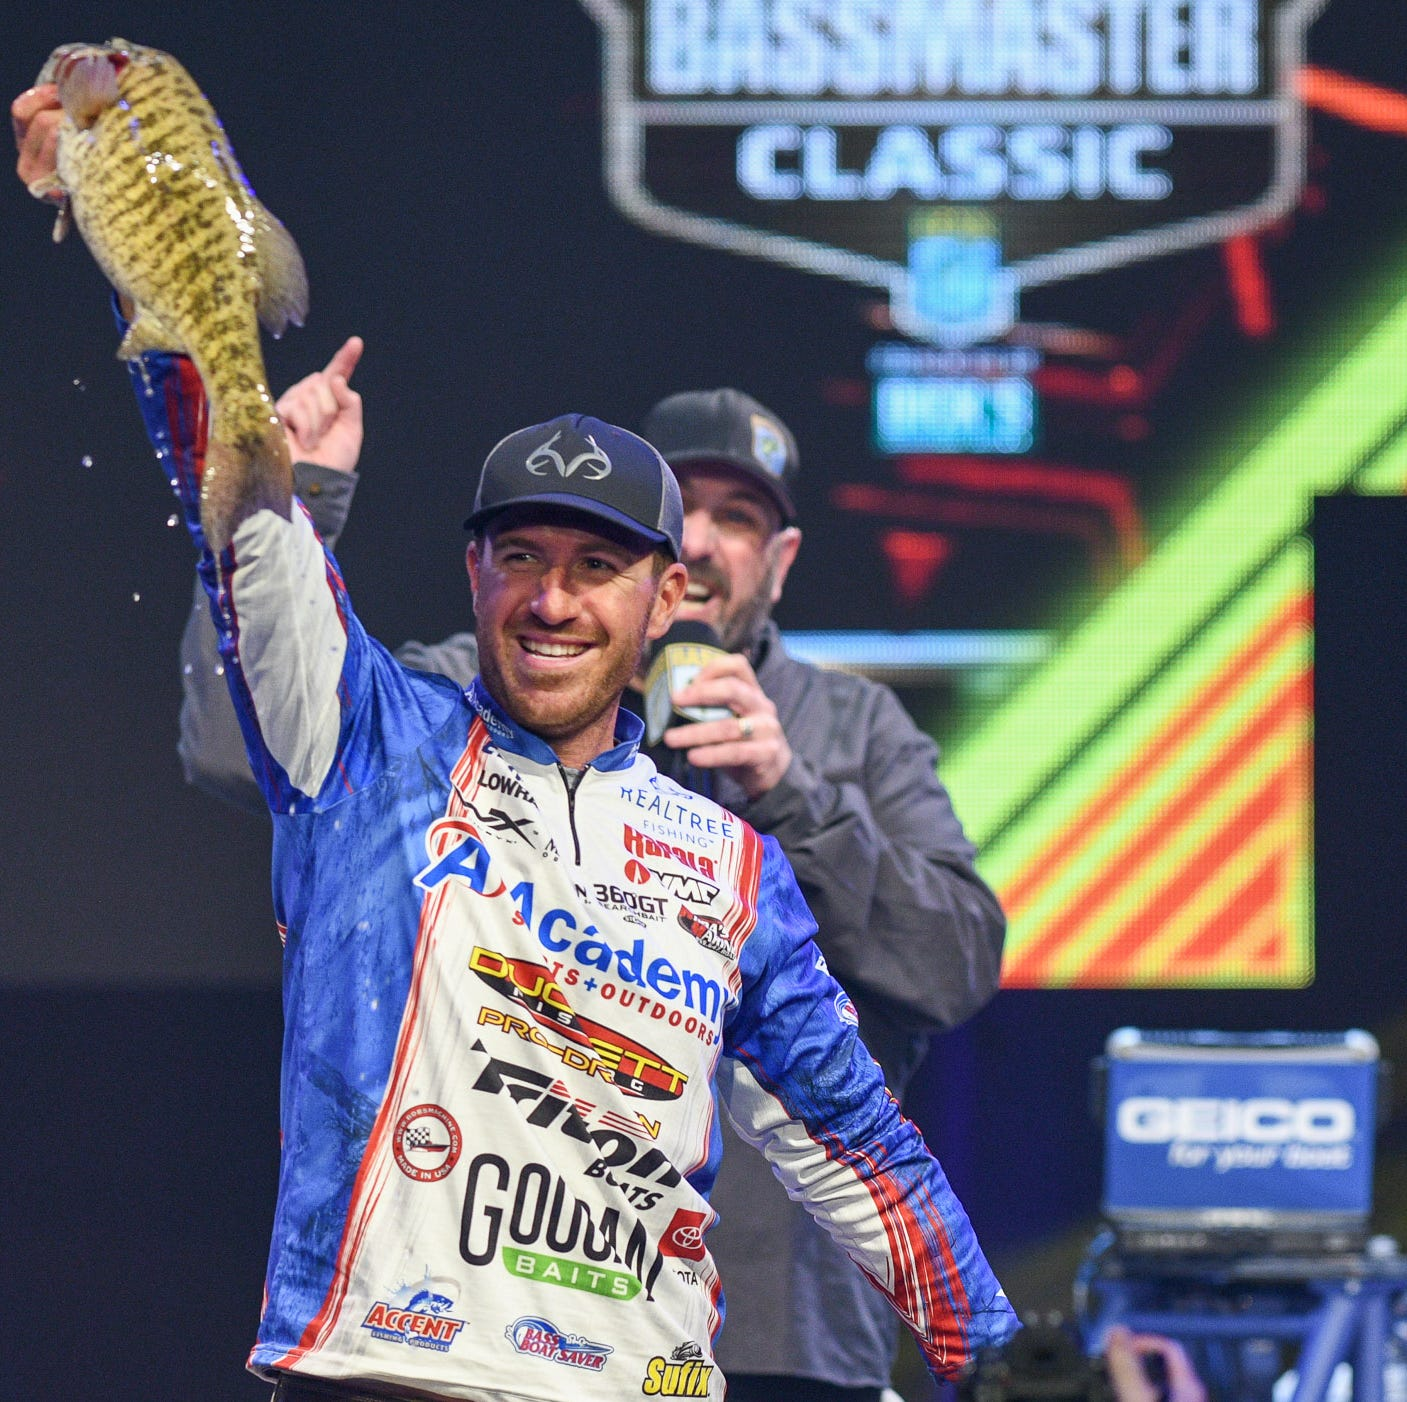 Bassmaster Classic: Jacob Wheeler takes lead entering final round in Knoxville